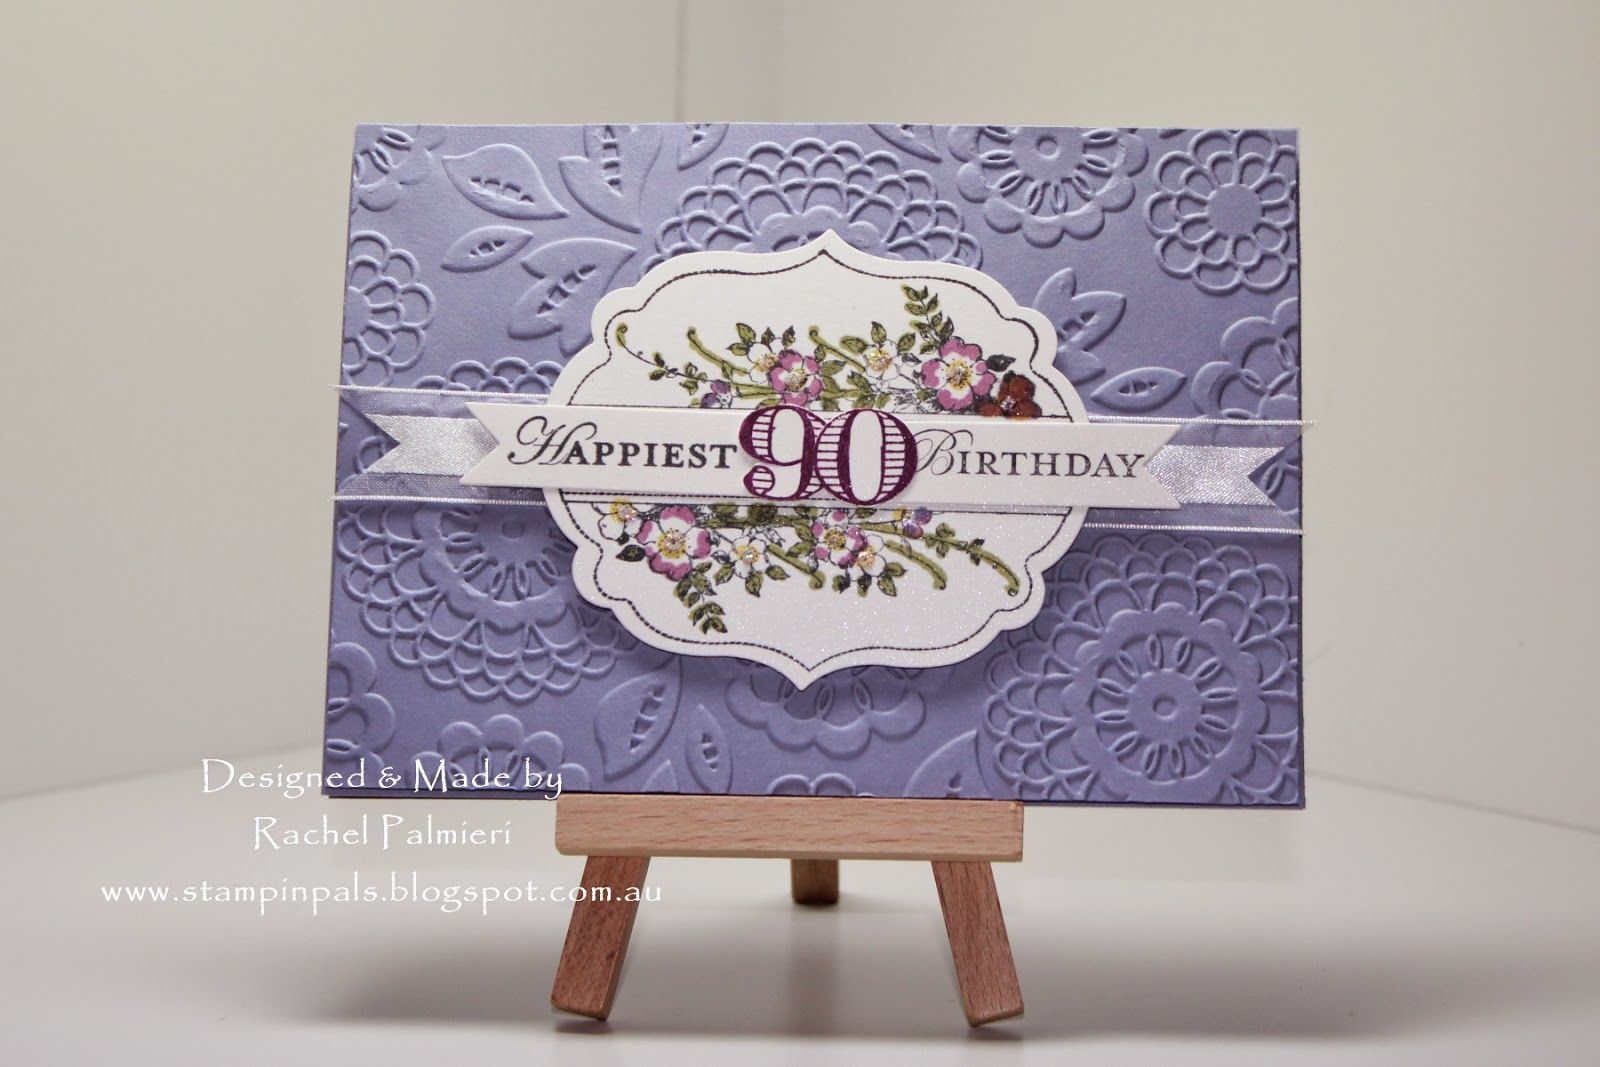 Stampin' Pals: Lavender and Lace SSC89